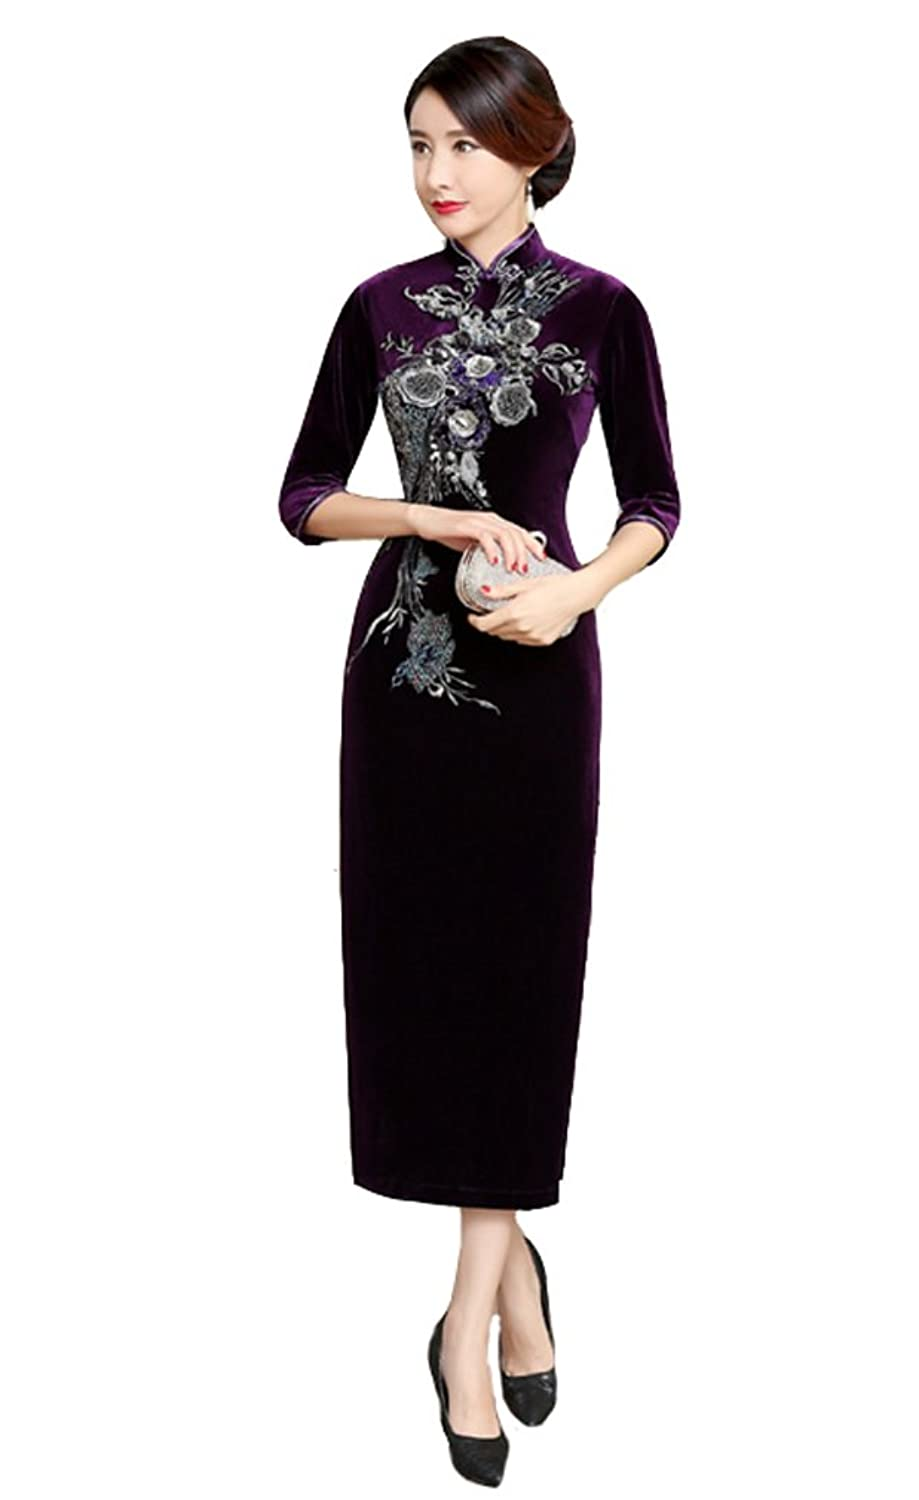 ACVIP Winter Velvet Long Chinese Dress Sequin Flower Embroidered Evening Wedding Party Cheongsam Qipao for Women